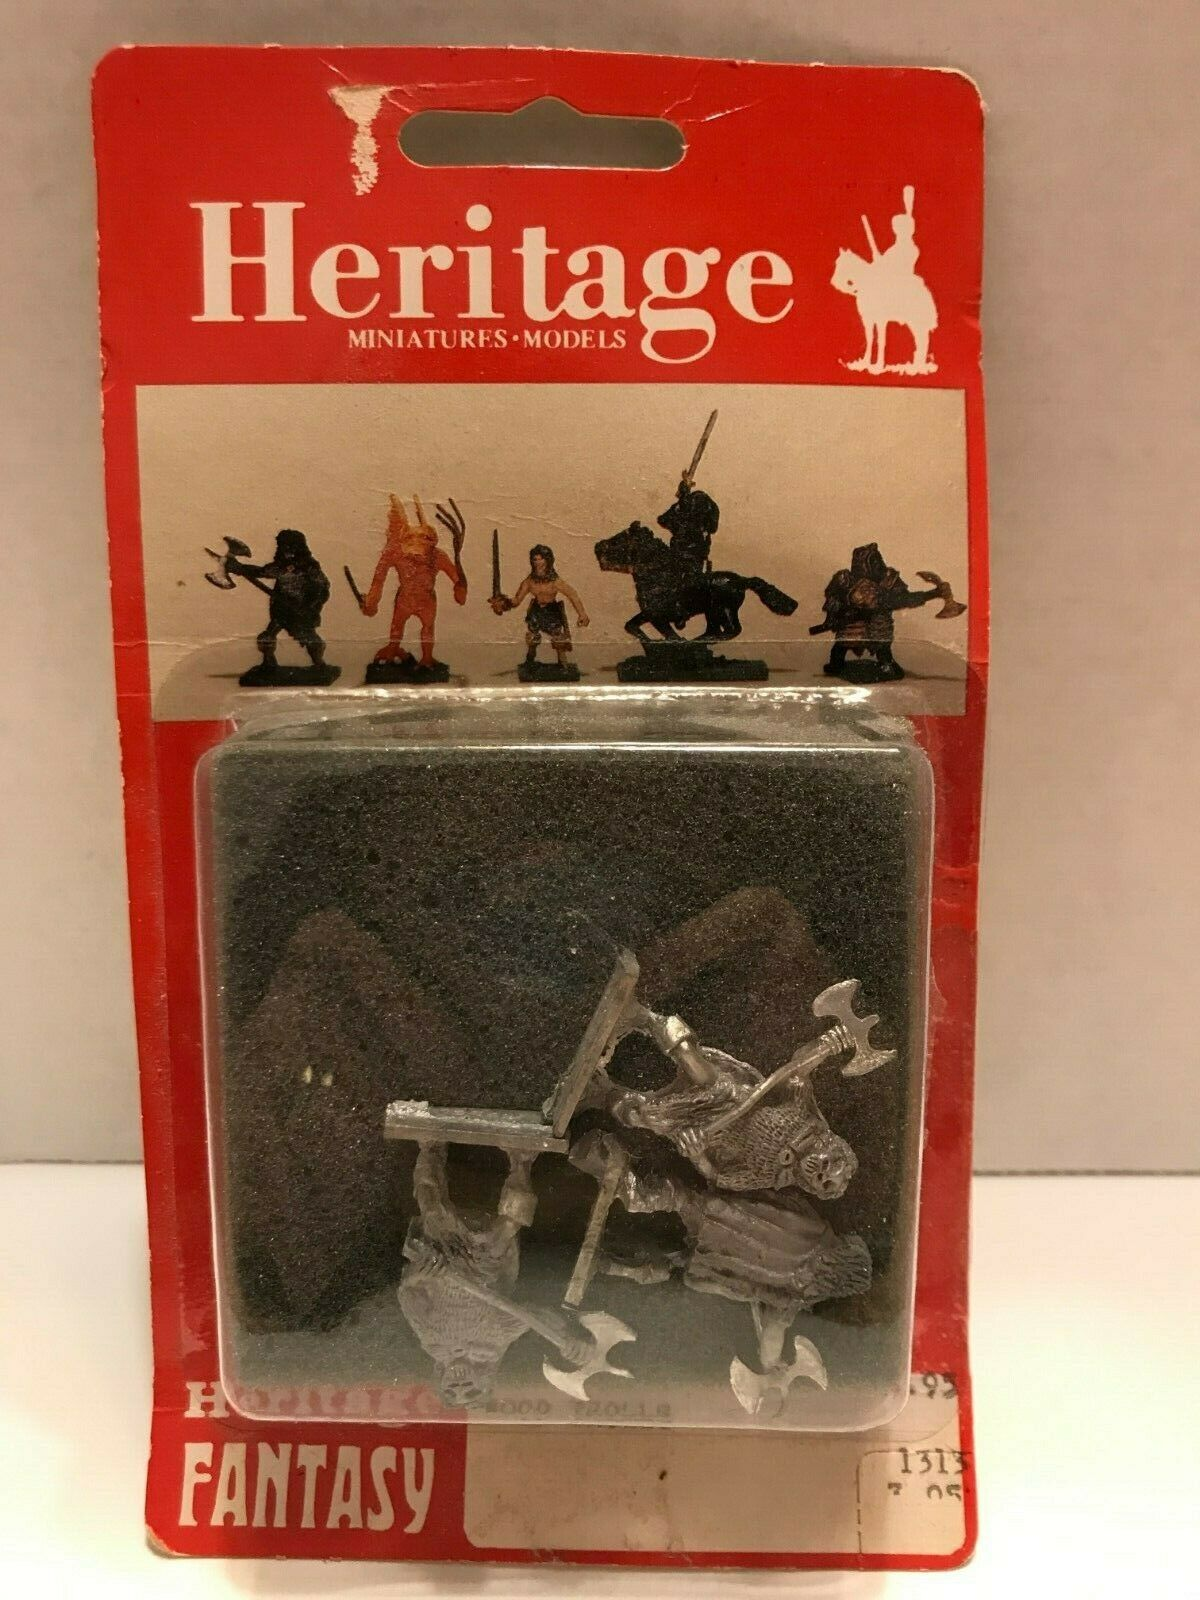 Heritage 25mm Miniatures NIB Dungeons & Dragons 1313 AD&D Wood Trolls